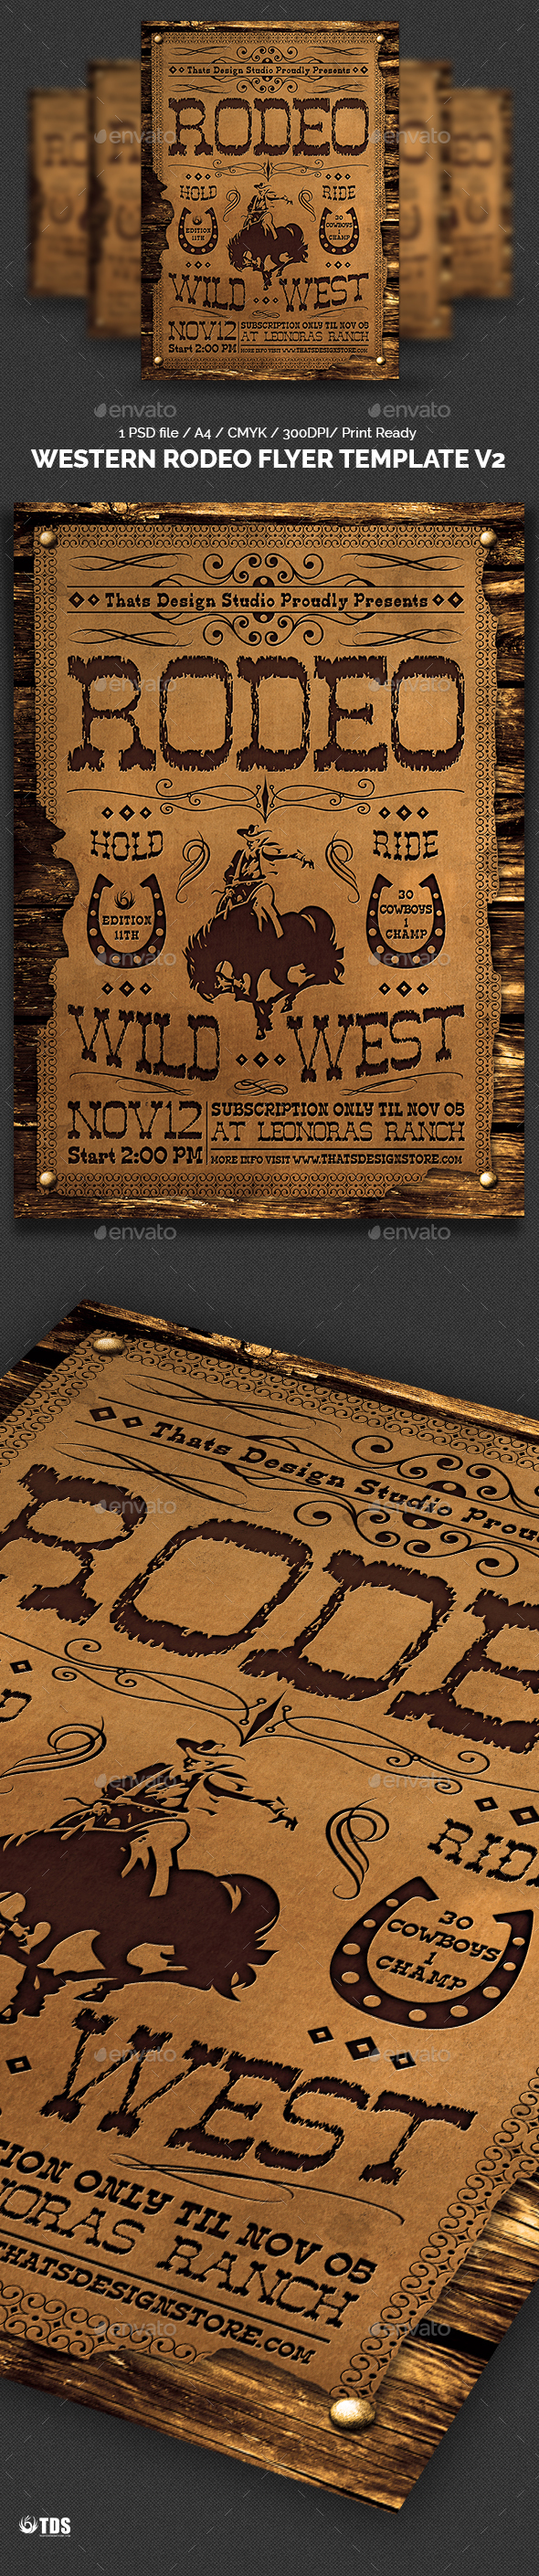 Western Rodeo Flyer Template V2 - Events Flyers